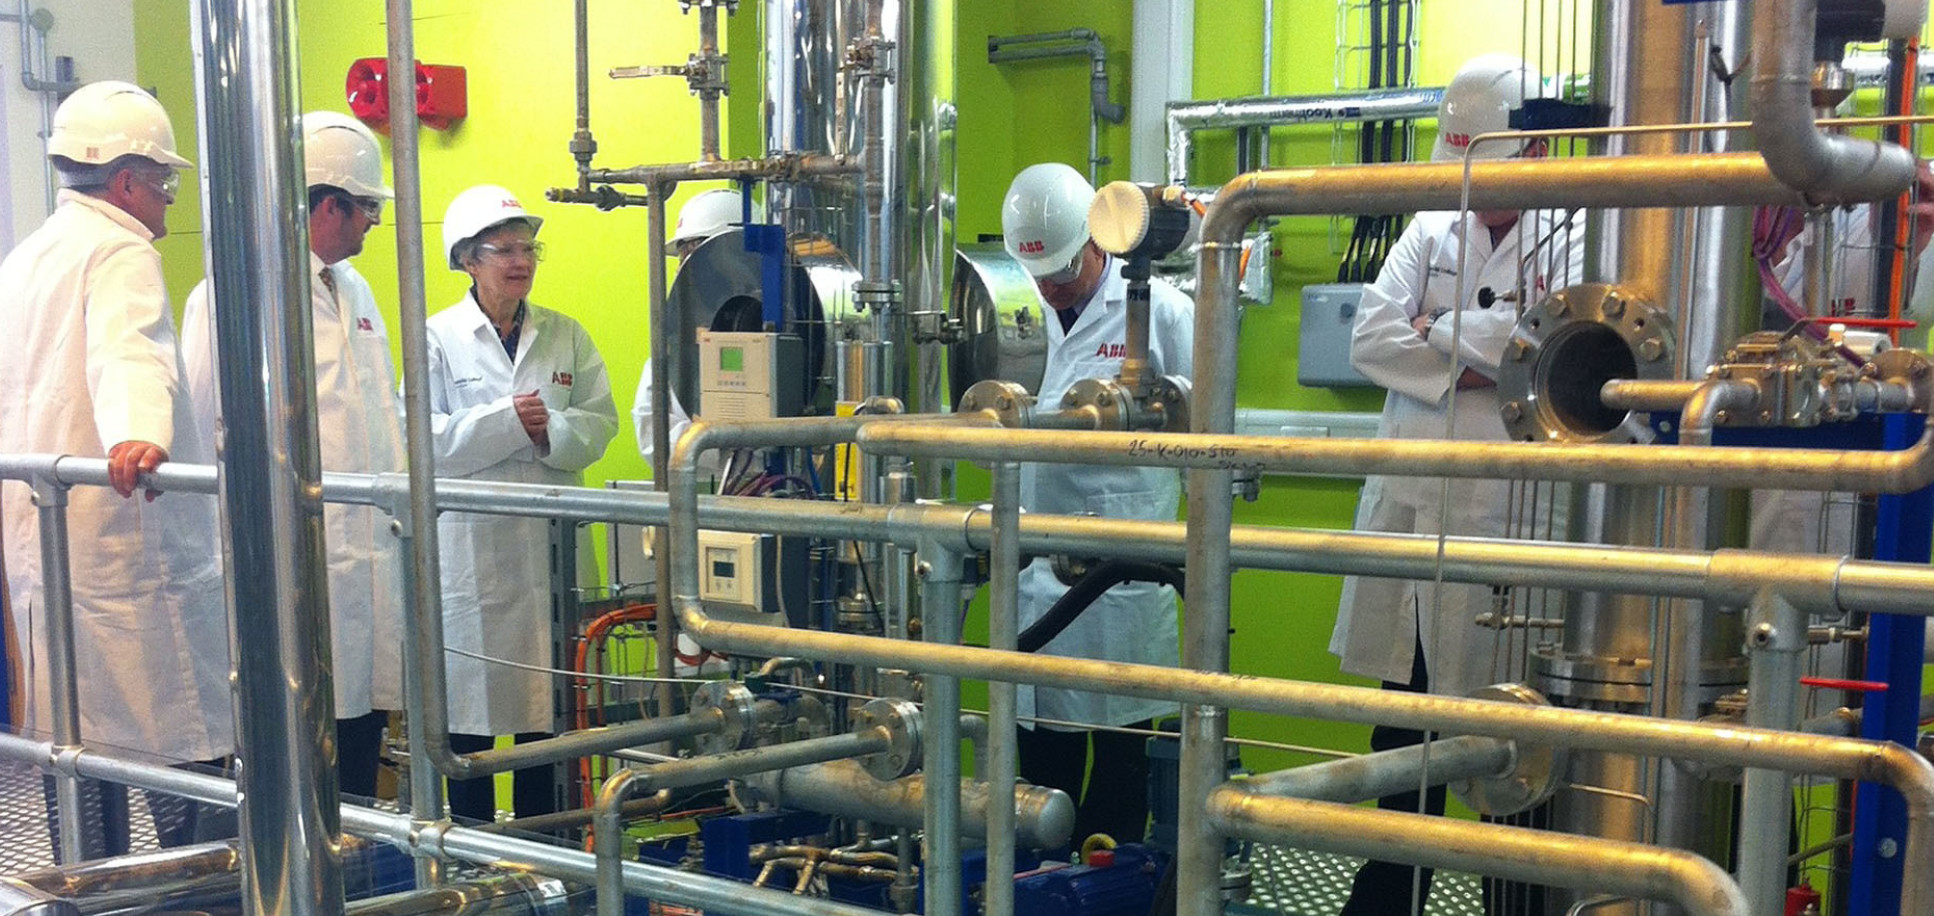 People wearing lab coats and hard hats inside the carbon capture pilot plant